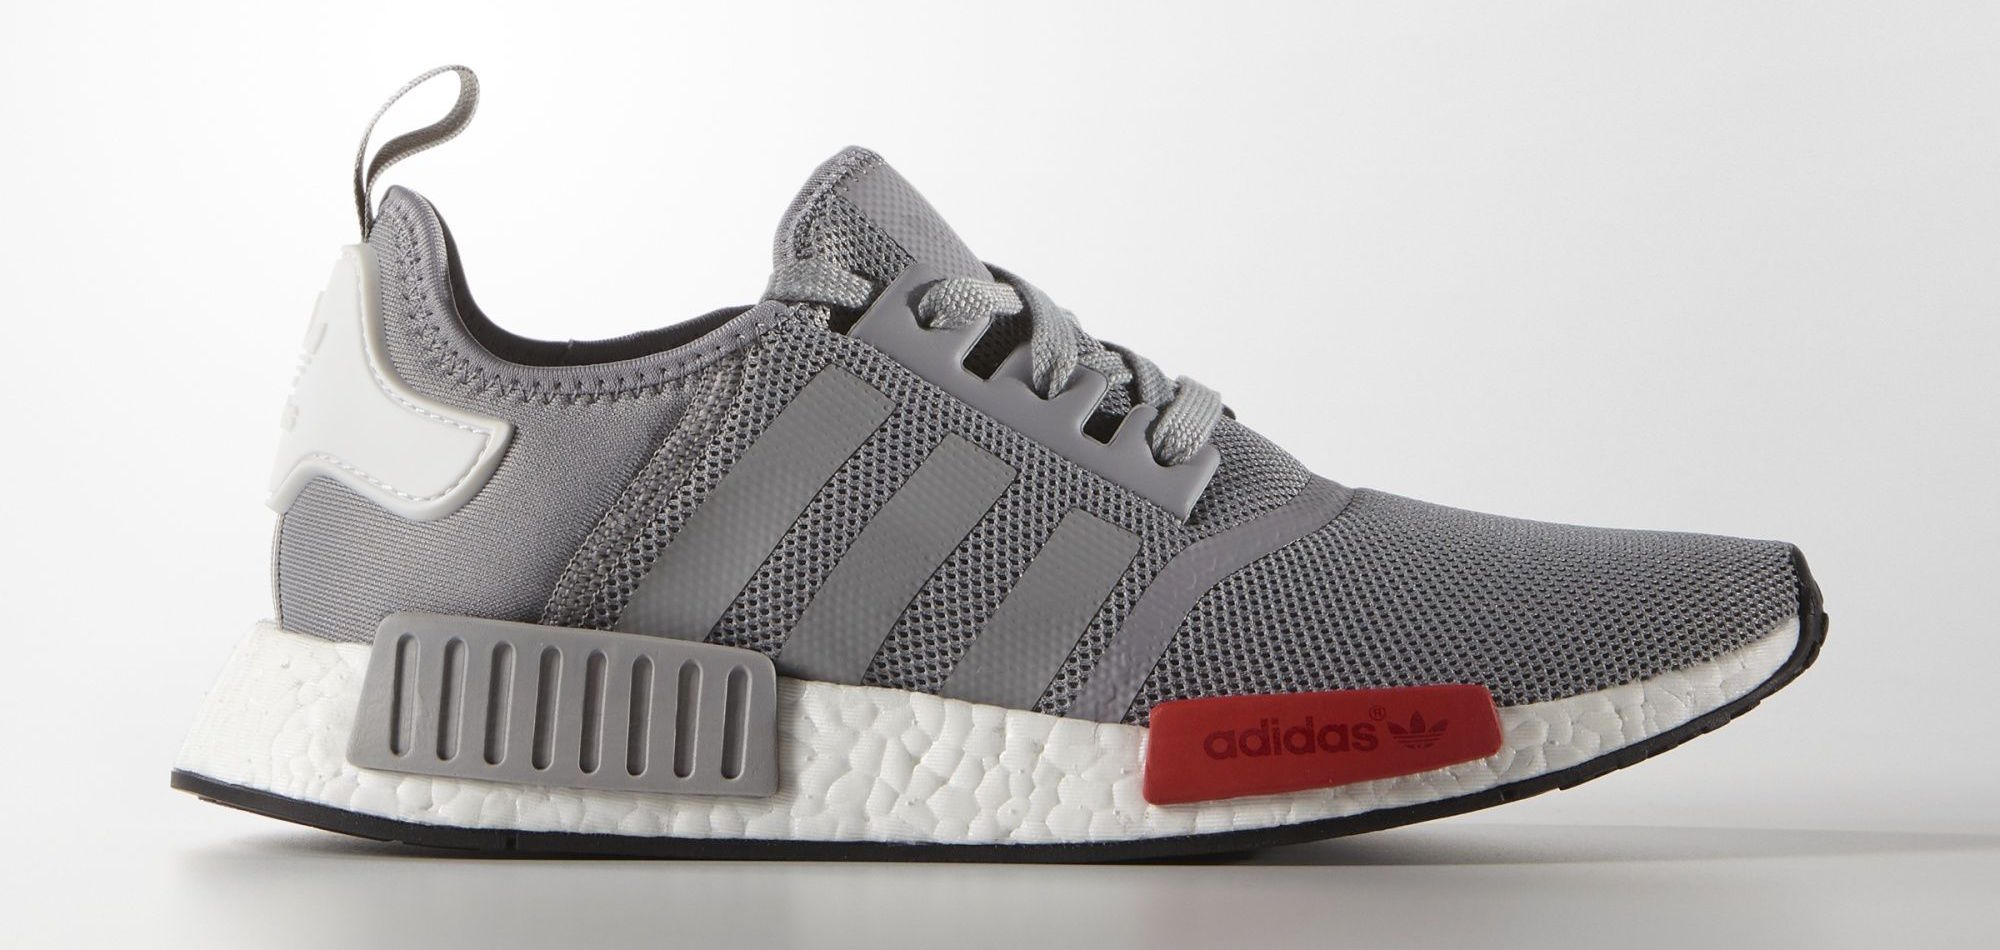 adidas ultra boost adidas review adidas nmd r2 pink grey